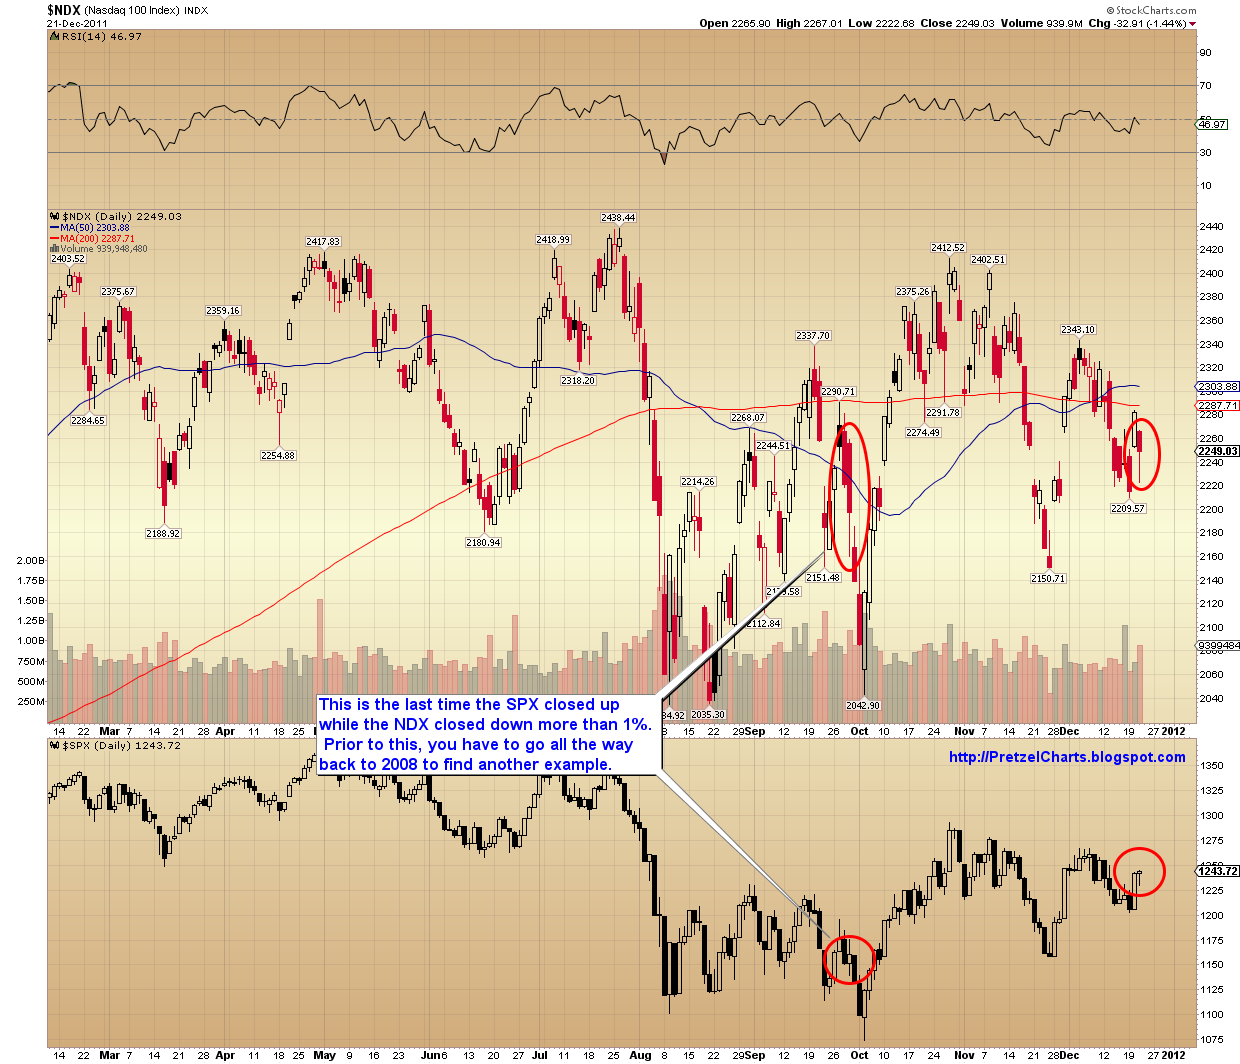 Pretzel logics market charts and analysis december 2011 it would seem this indicator is not only confirmation of lower prices soon but almost a confirmation of the bear market itself biocorpaavc Images